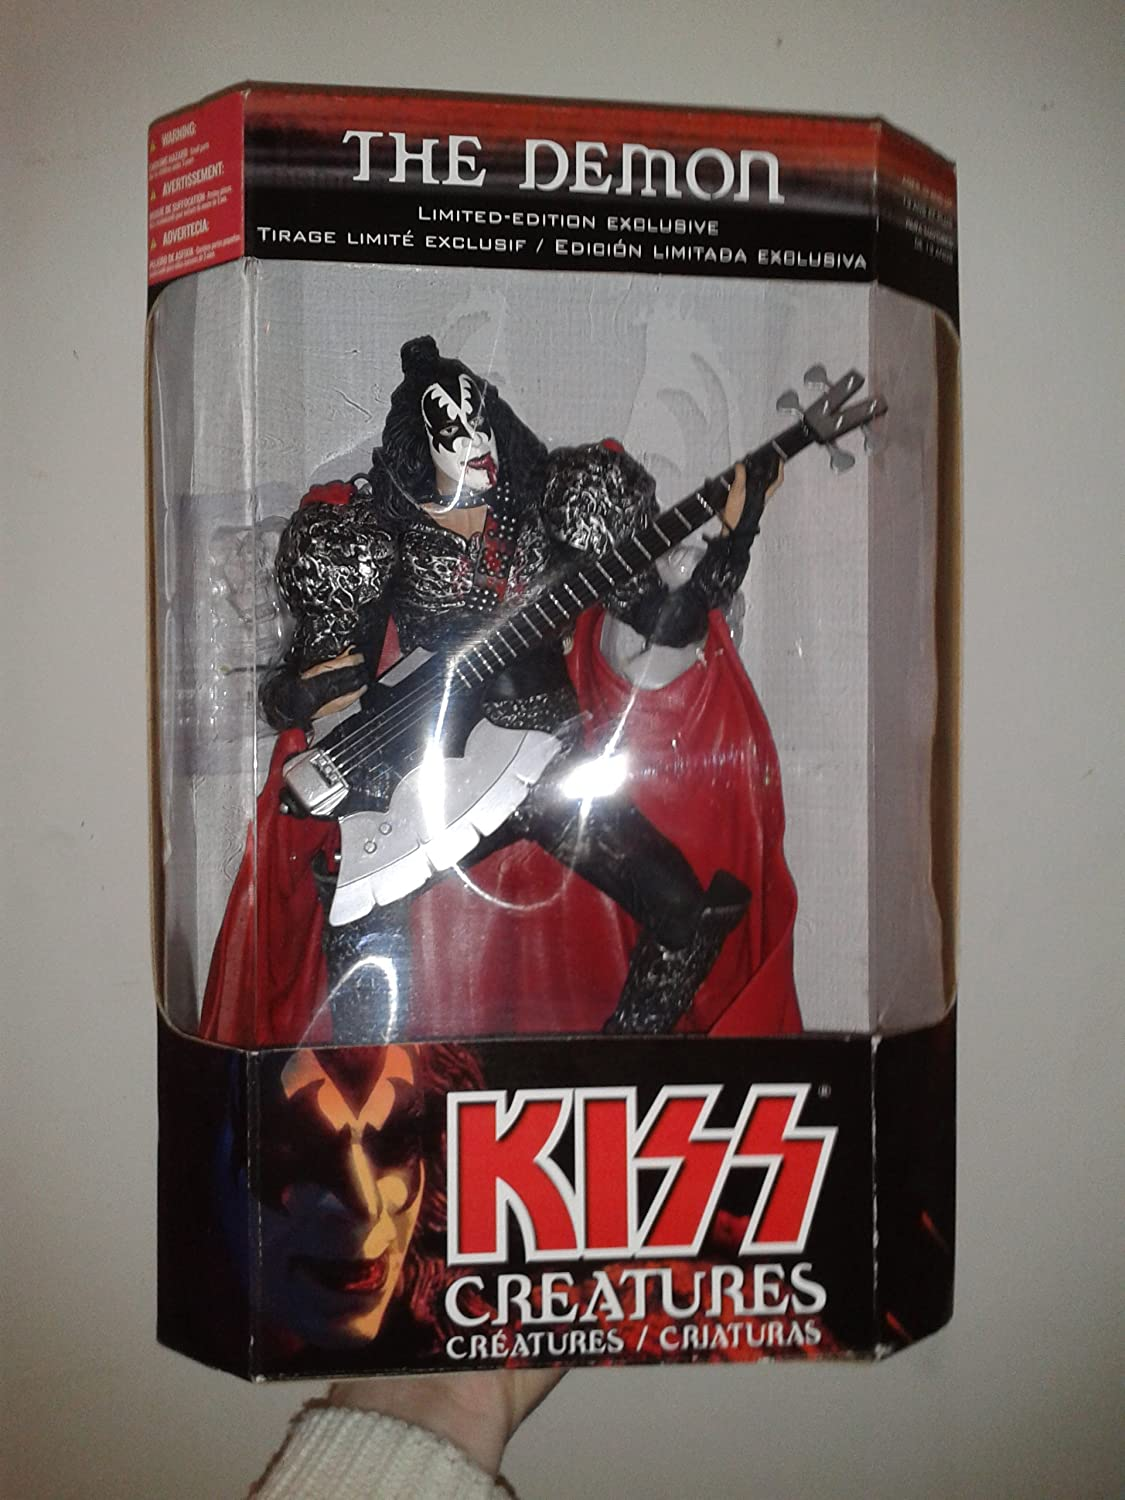 2002 TMT McFarlane Toys Kiss Creatures The Demon Gene Simmons 12  Boxed Limited Edition Exclusive Farlane Action Figure